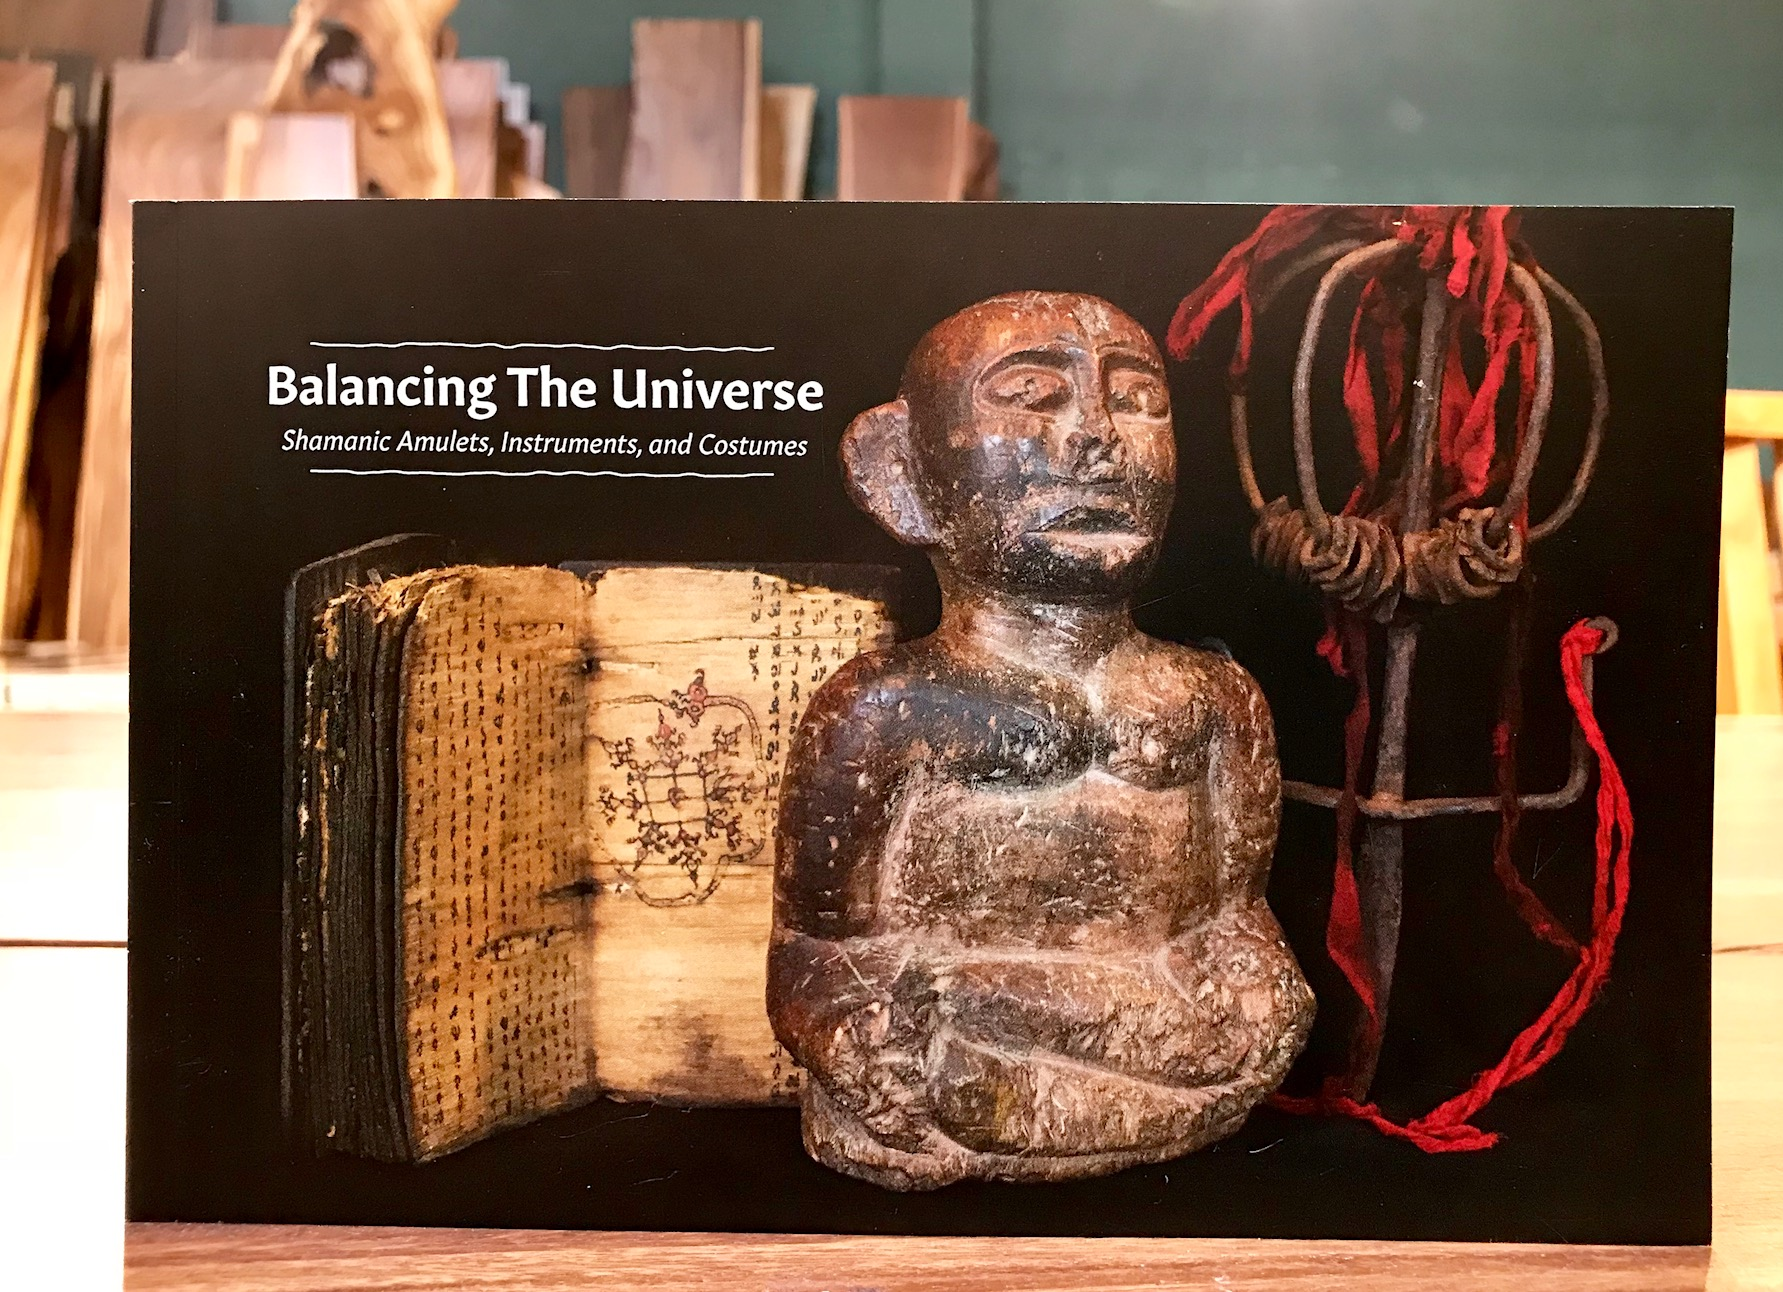 The catalog includes a dedication and personal forward from the collector, David Bardwick, of the David Alan Collection, and text on the history of Shamanism and of shamanism specific to each of the locations/cultures represented.